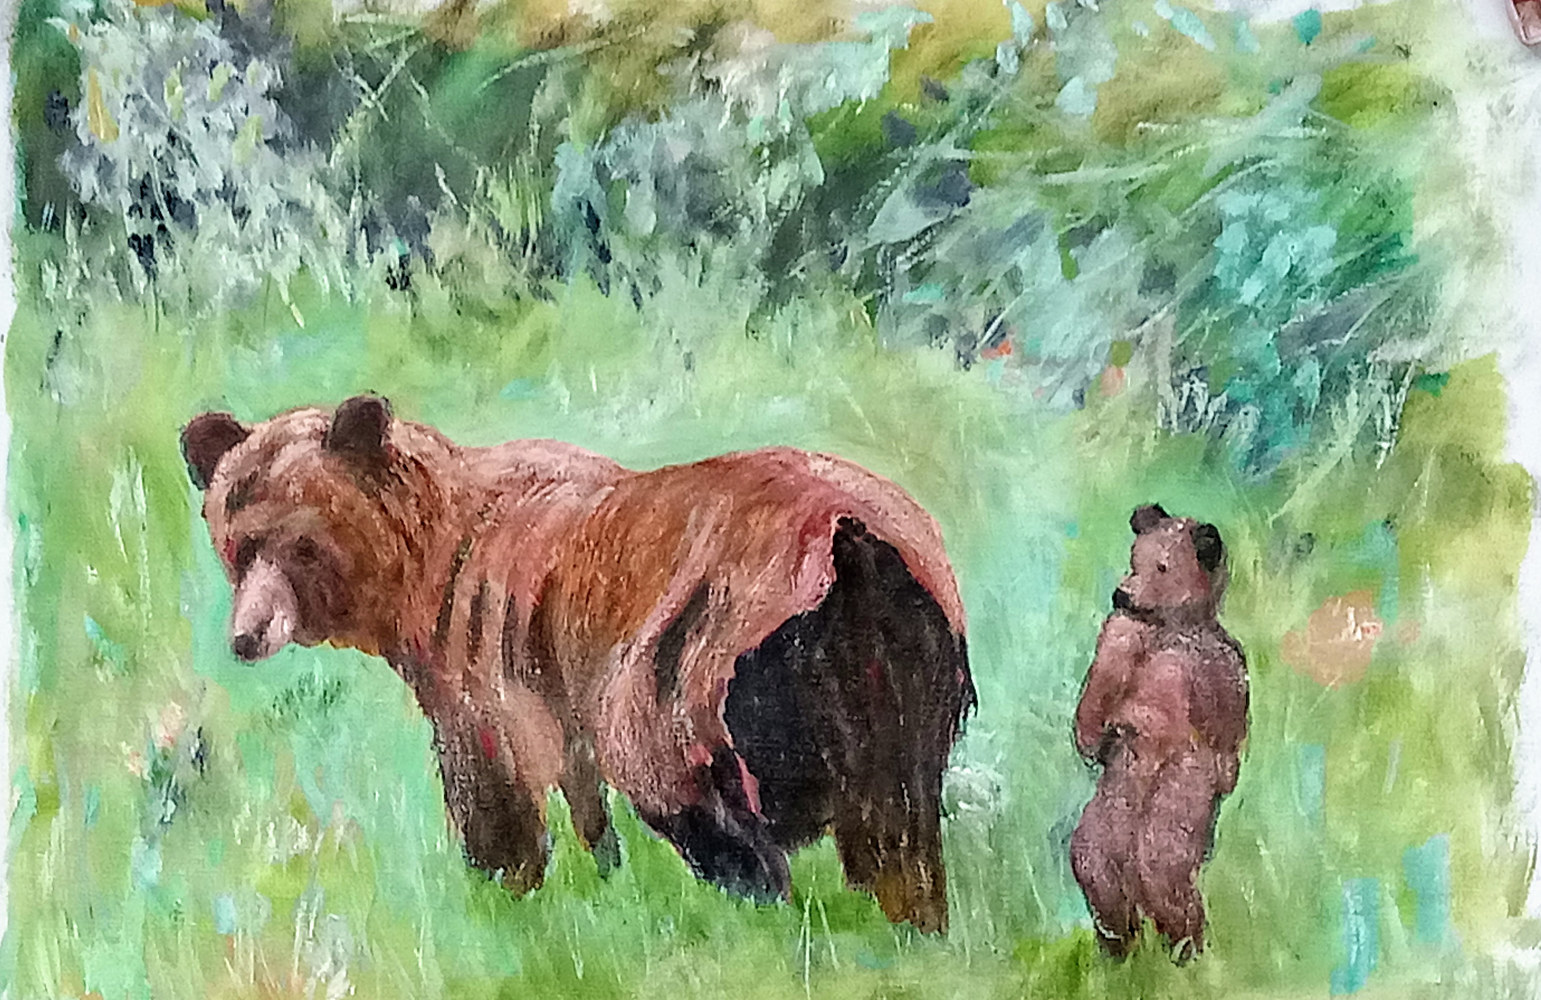 Oil painting Mother Bear with her Cub by Gwenda Branjerdporn